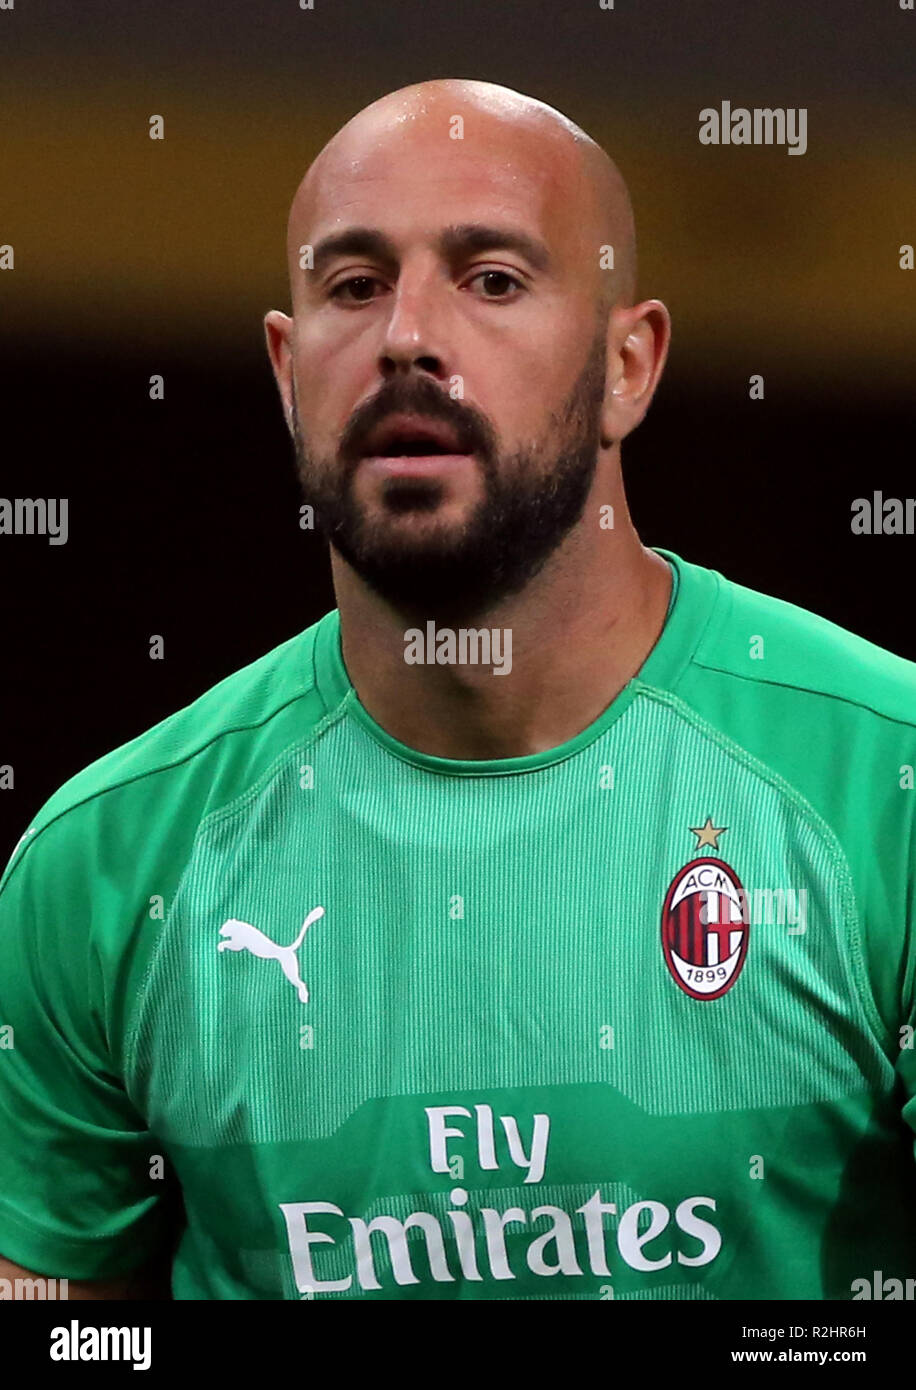 Pepe Reina High Resolution Stock Photography and Images - Alamy